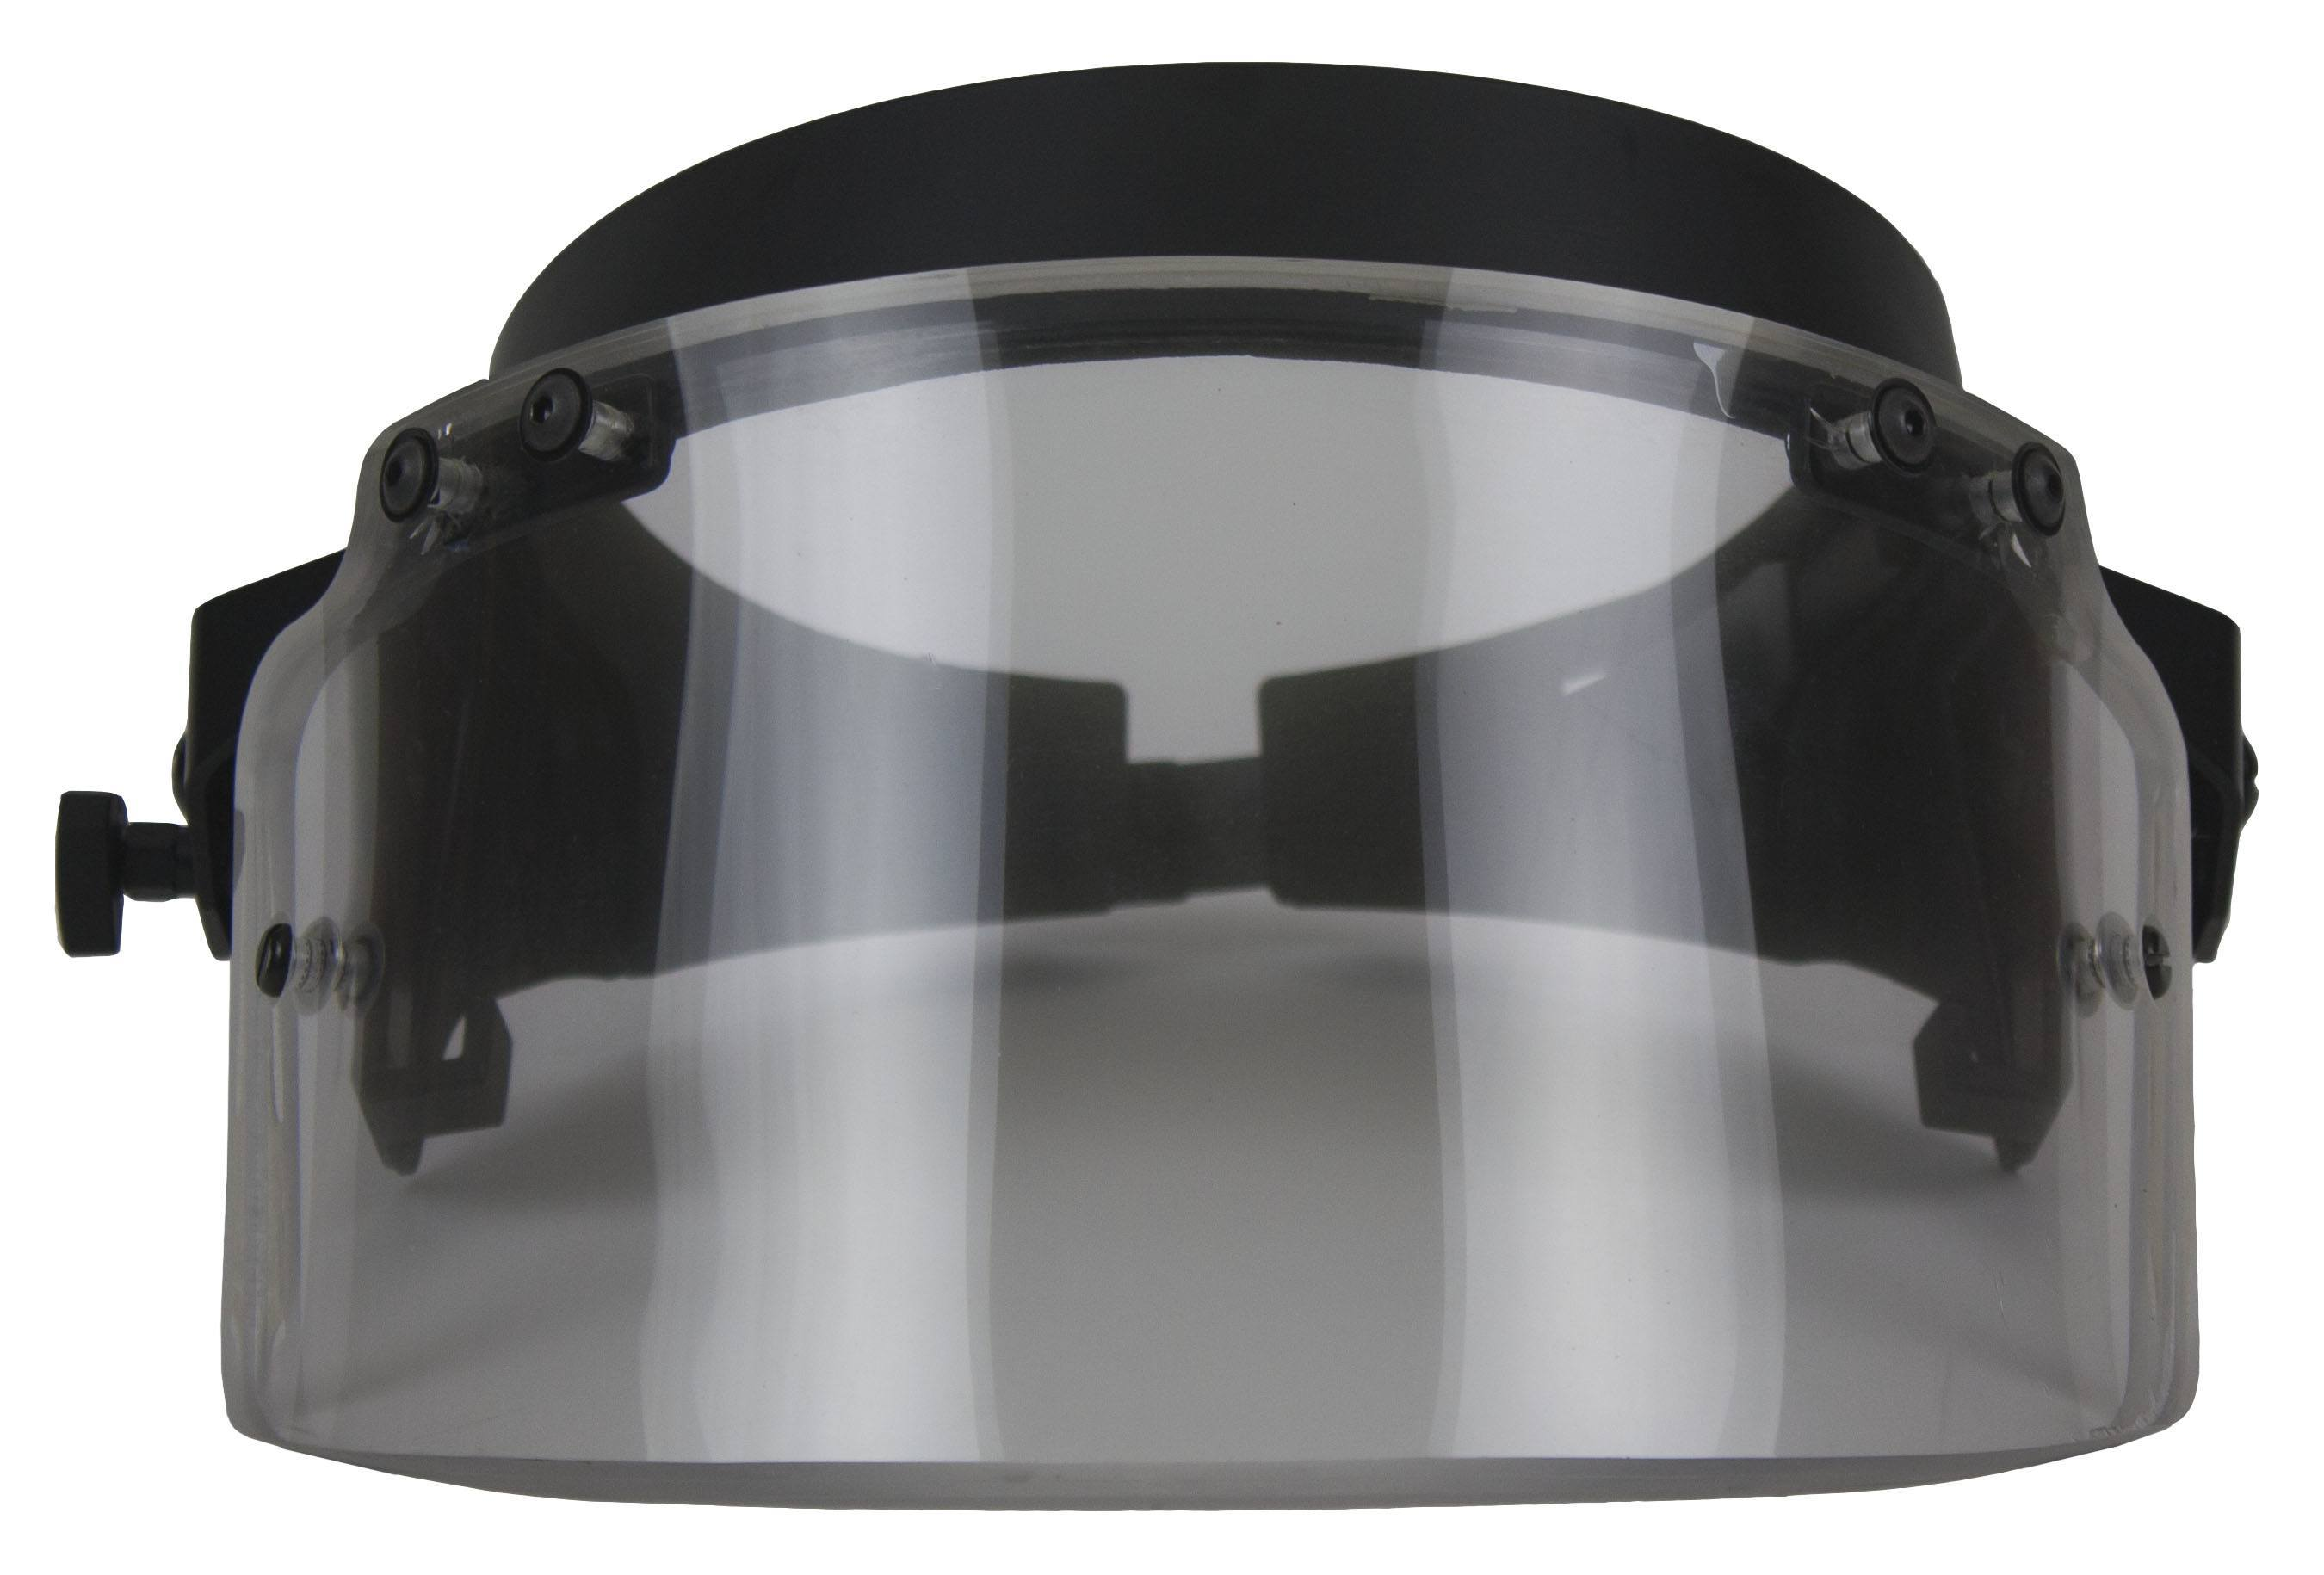 GH-HB1-BV2-1 Ballistic Visor for PASGT or ACH Helmet - Level II